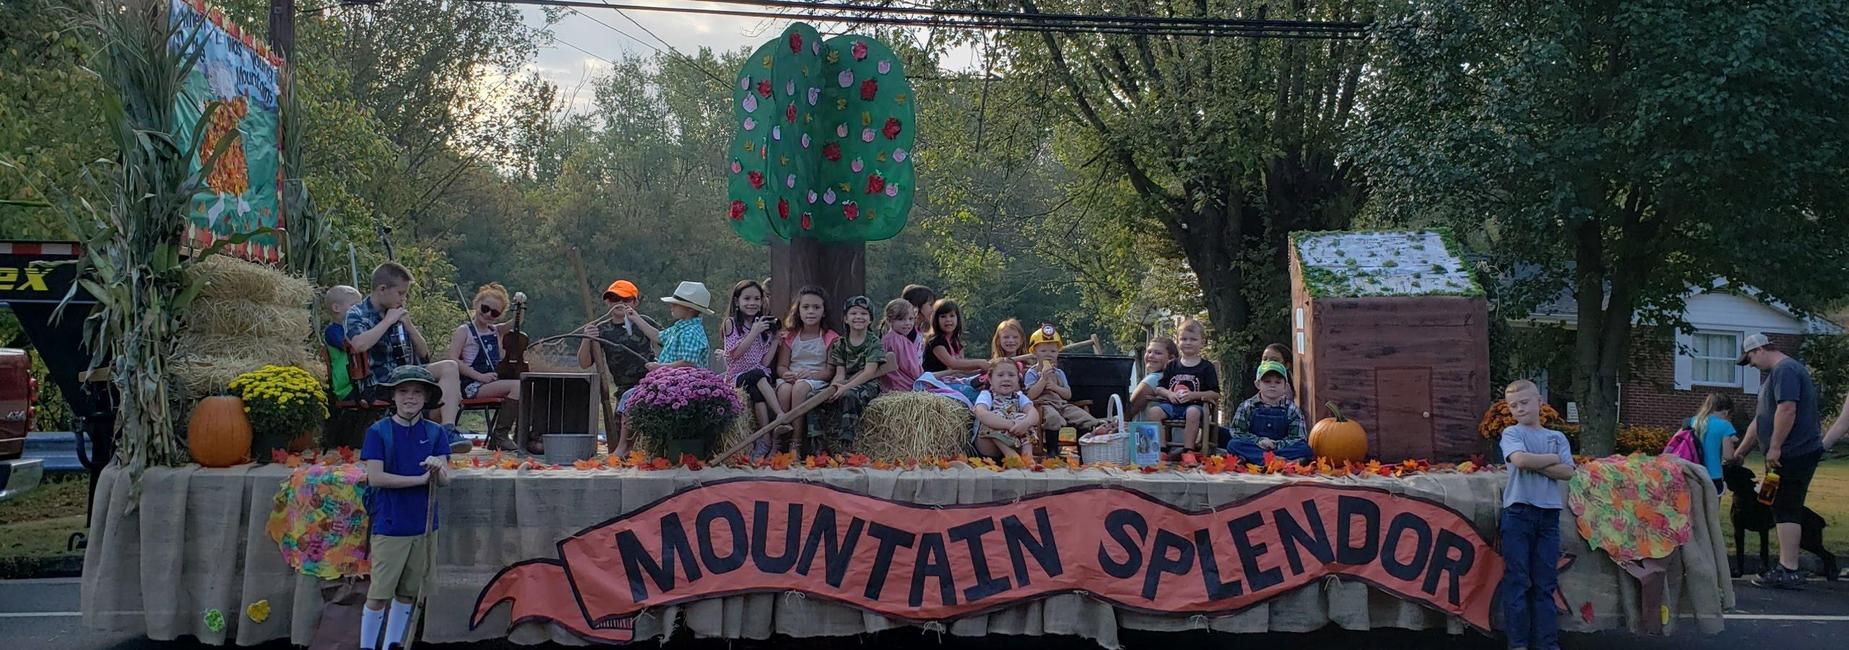 Students on float wait for parade to begin.